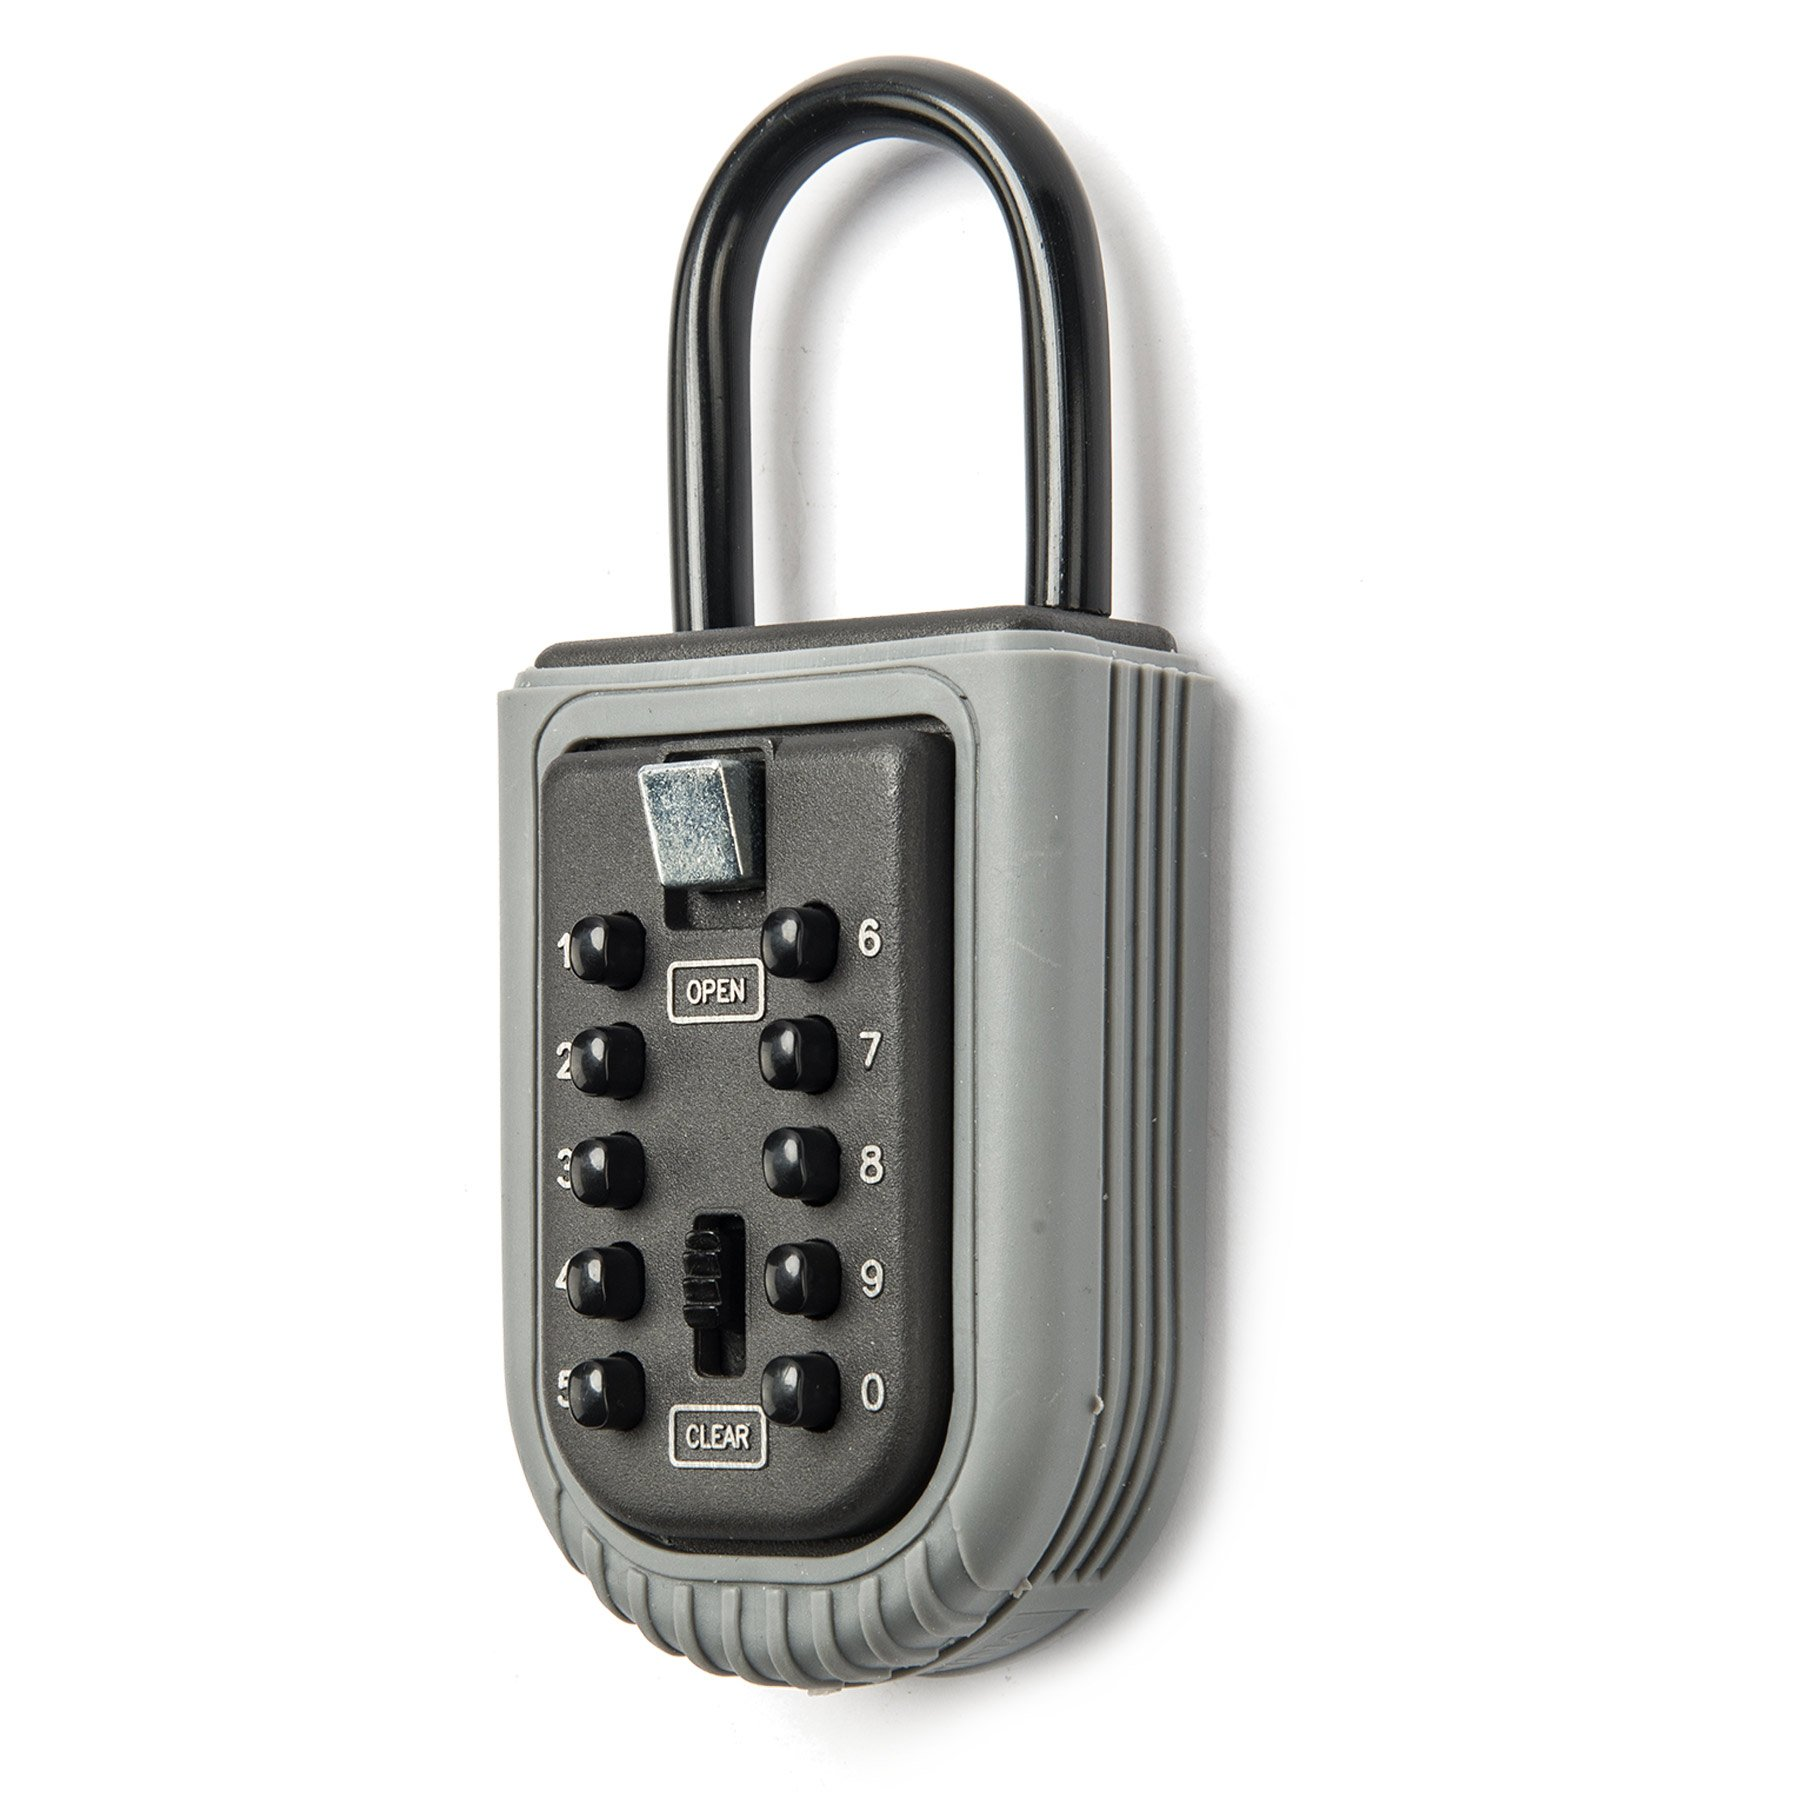 CO-Z Wall Mounted Key Lock Box Waterproof with 10-Digit Push Button Combination for Guests, Tenants, Realtors, Contractors, Spare Key Storage at Home or Office by CO-Z (Image #2)